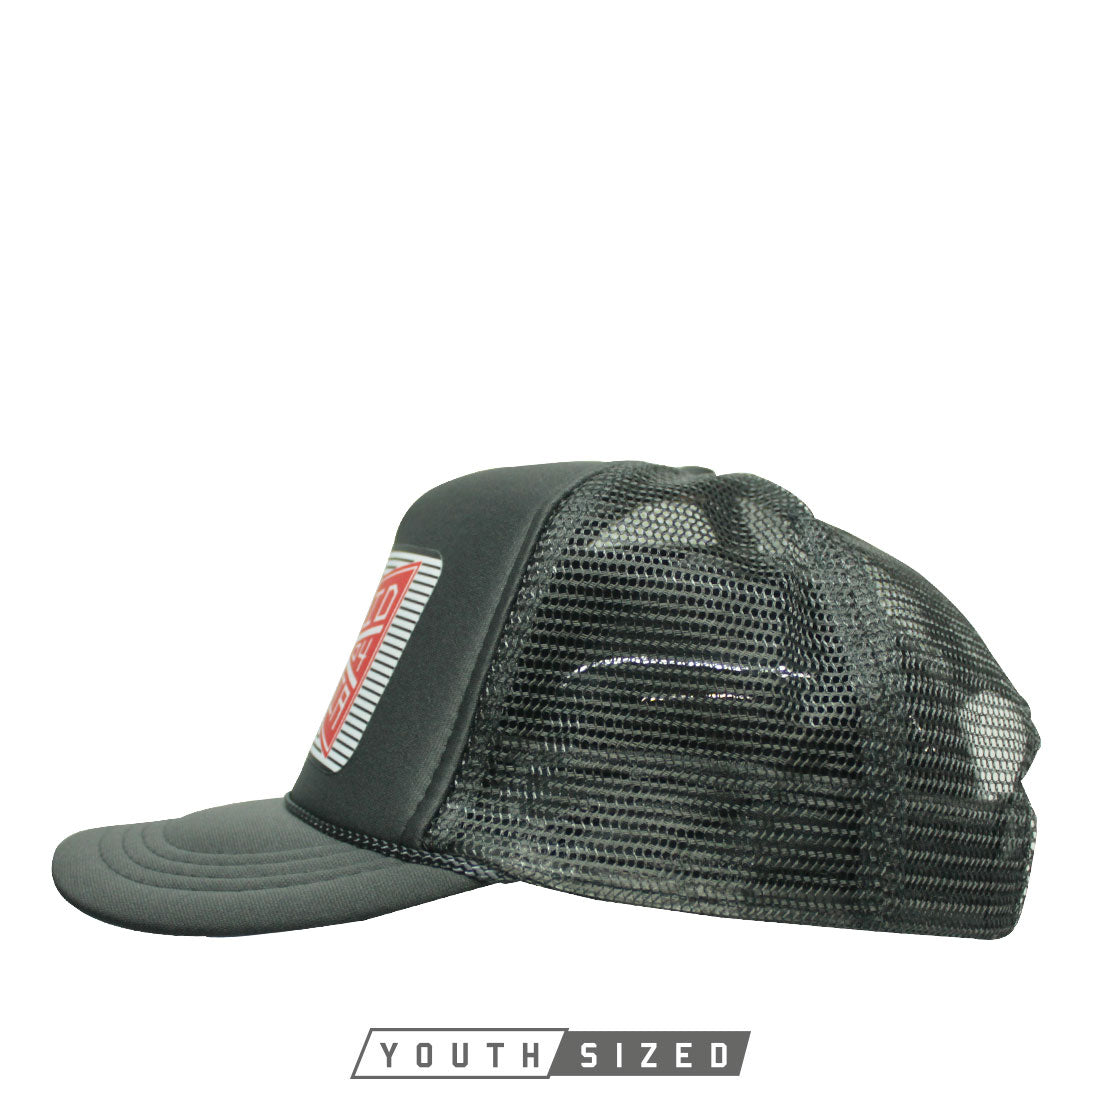 Bind Youth Hat in Charcoal Gray - Side View